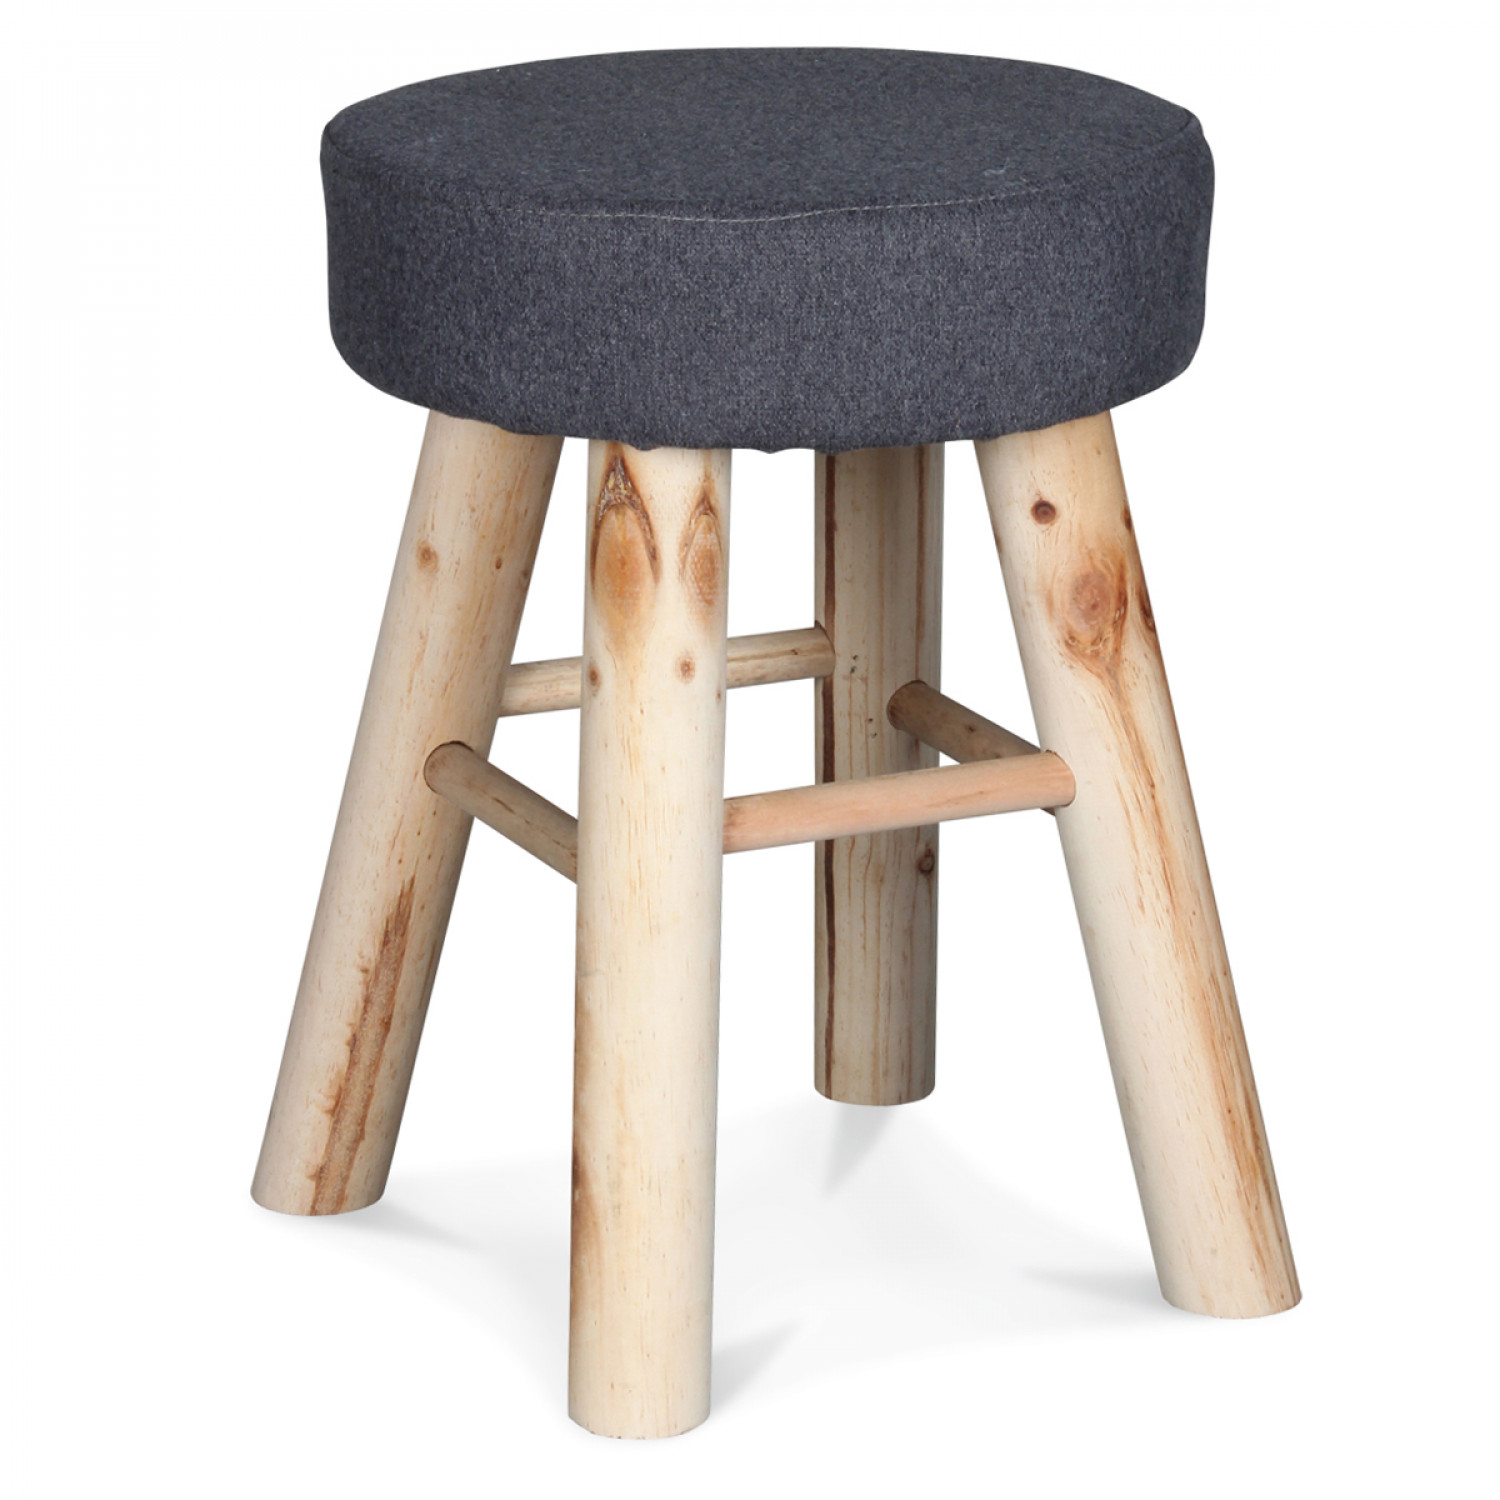 petit tabouret rond gris flanelle pieds en bois demeure. Black Bedroom Furniture Sets. Home Design Ideas